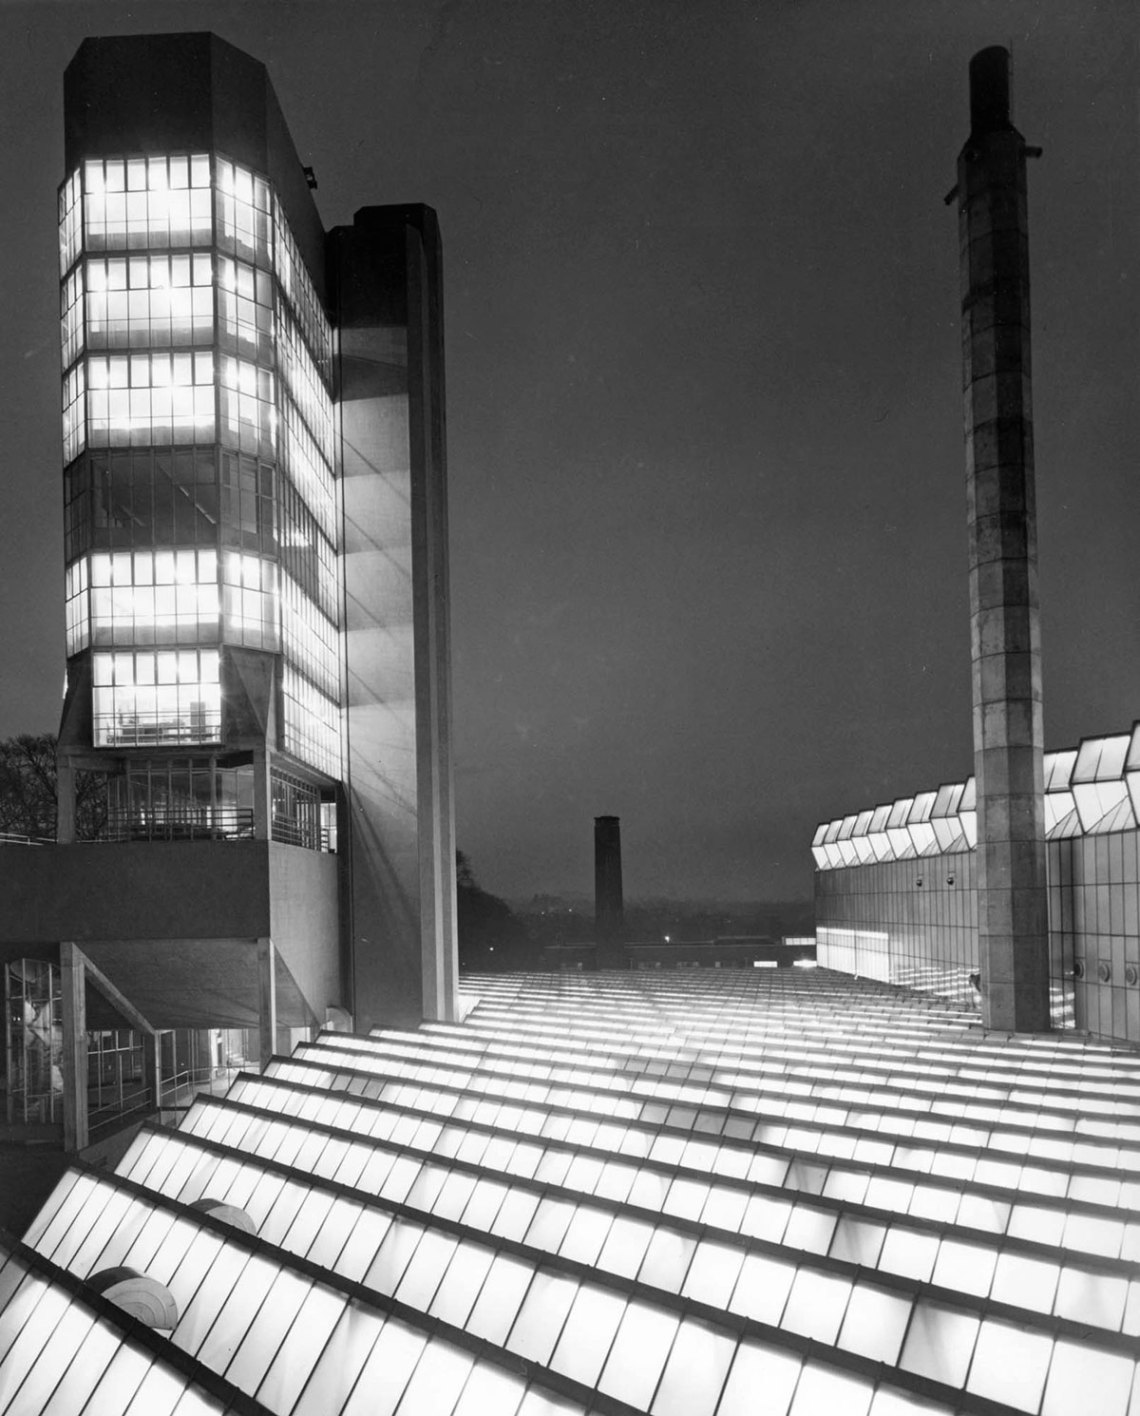 Night view of the engineering Building in Leicester by James Stirling & James Gowan